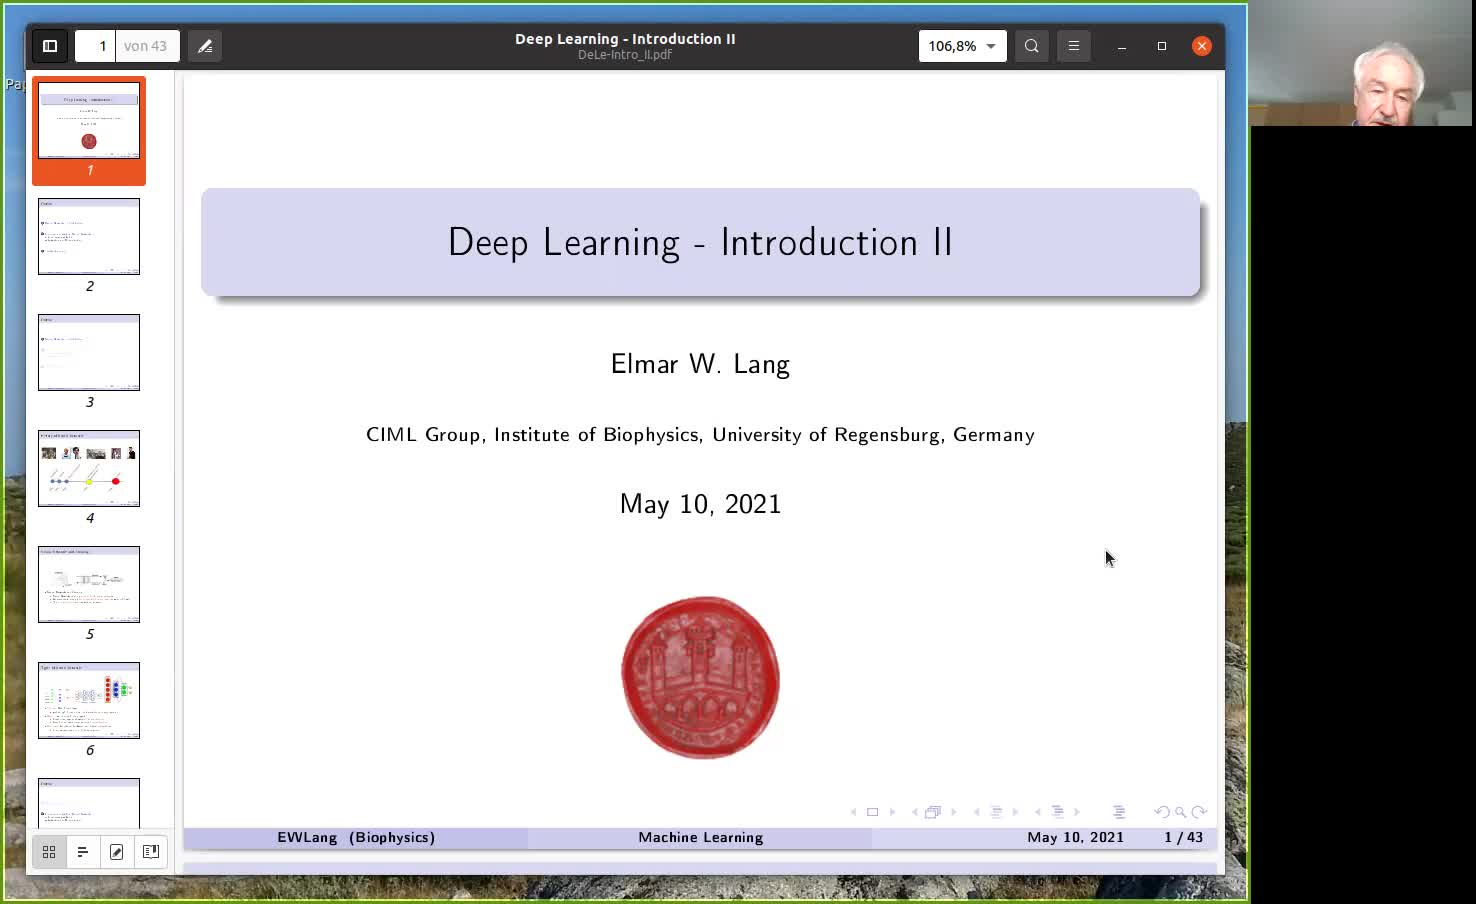 Deep Learning - Introduction 2